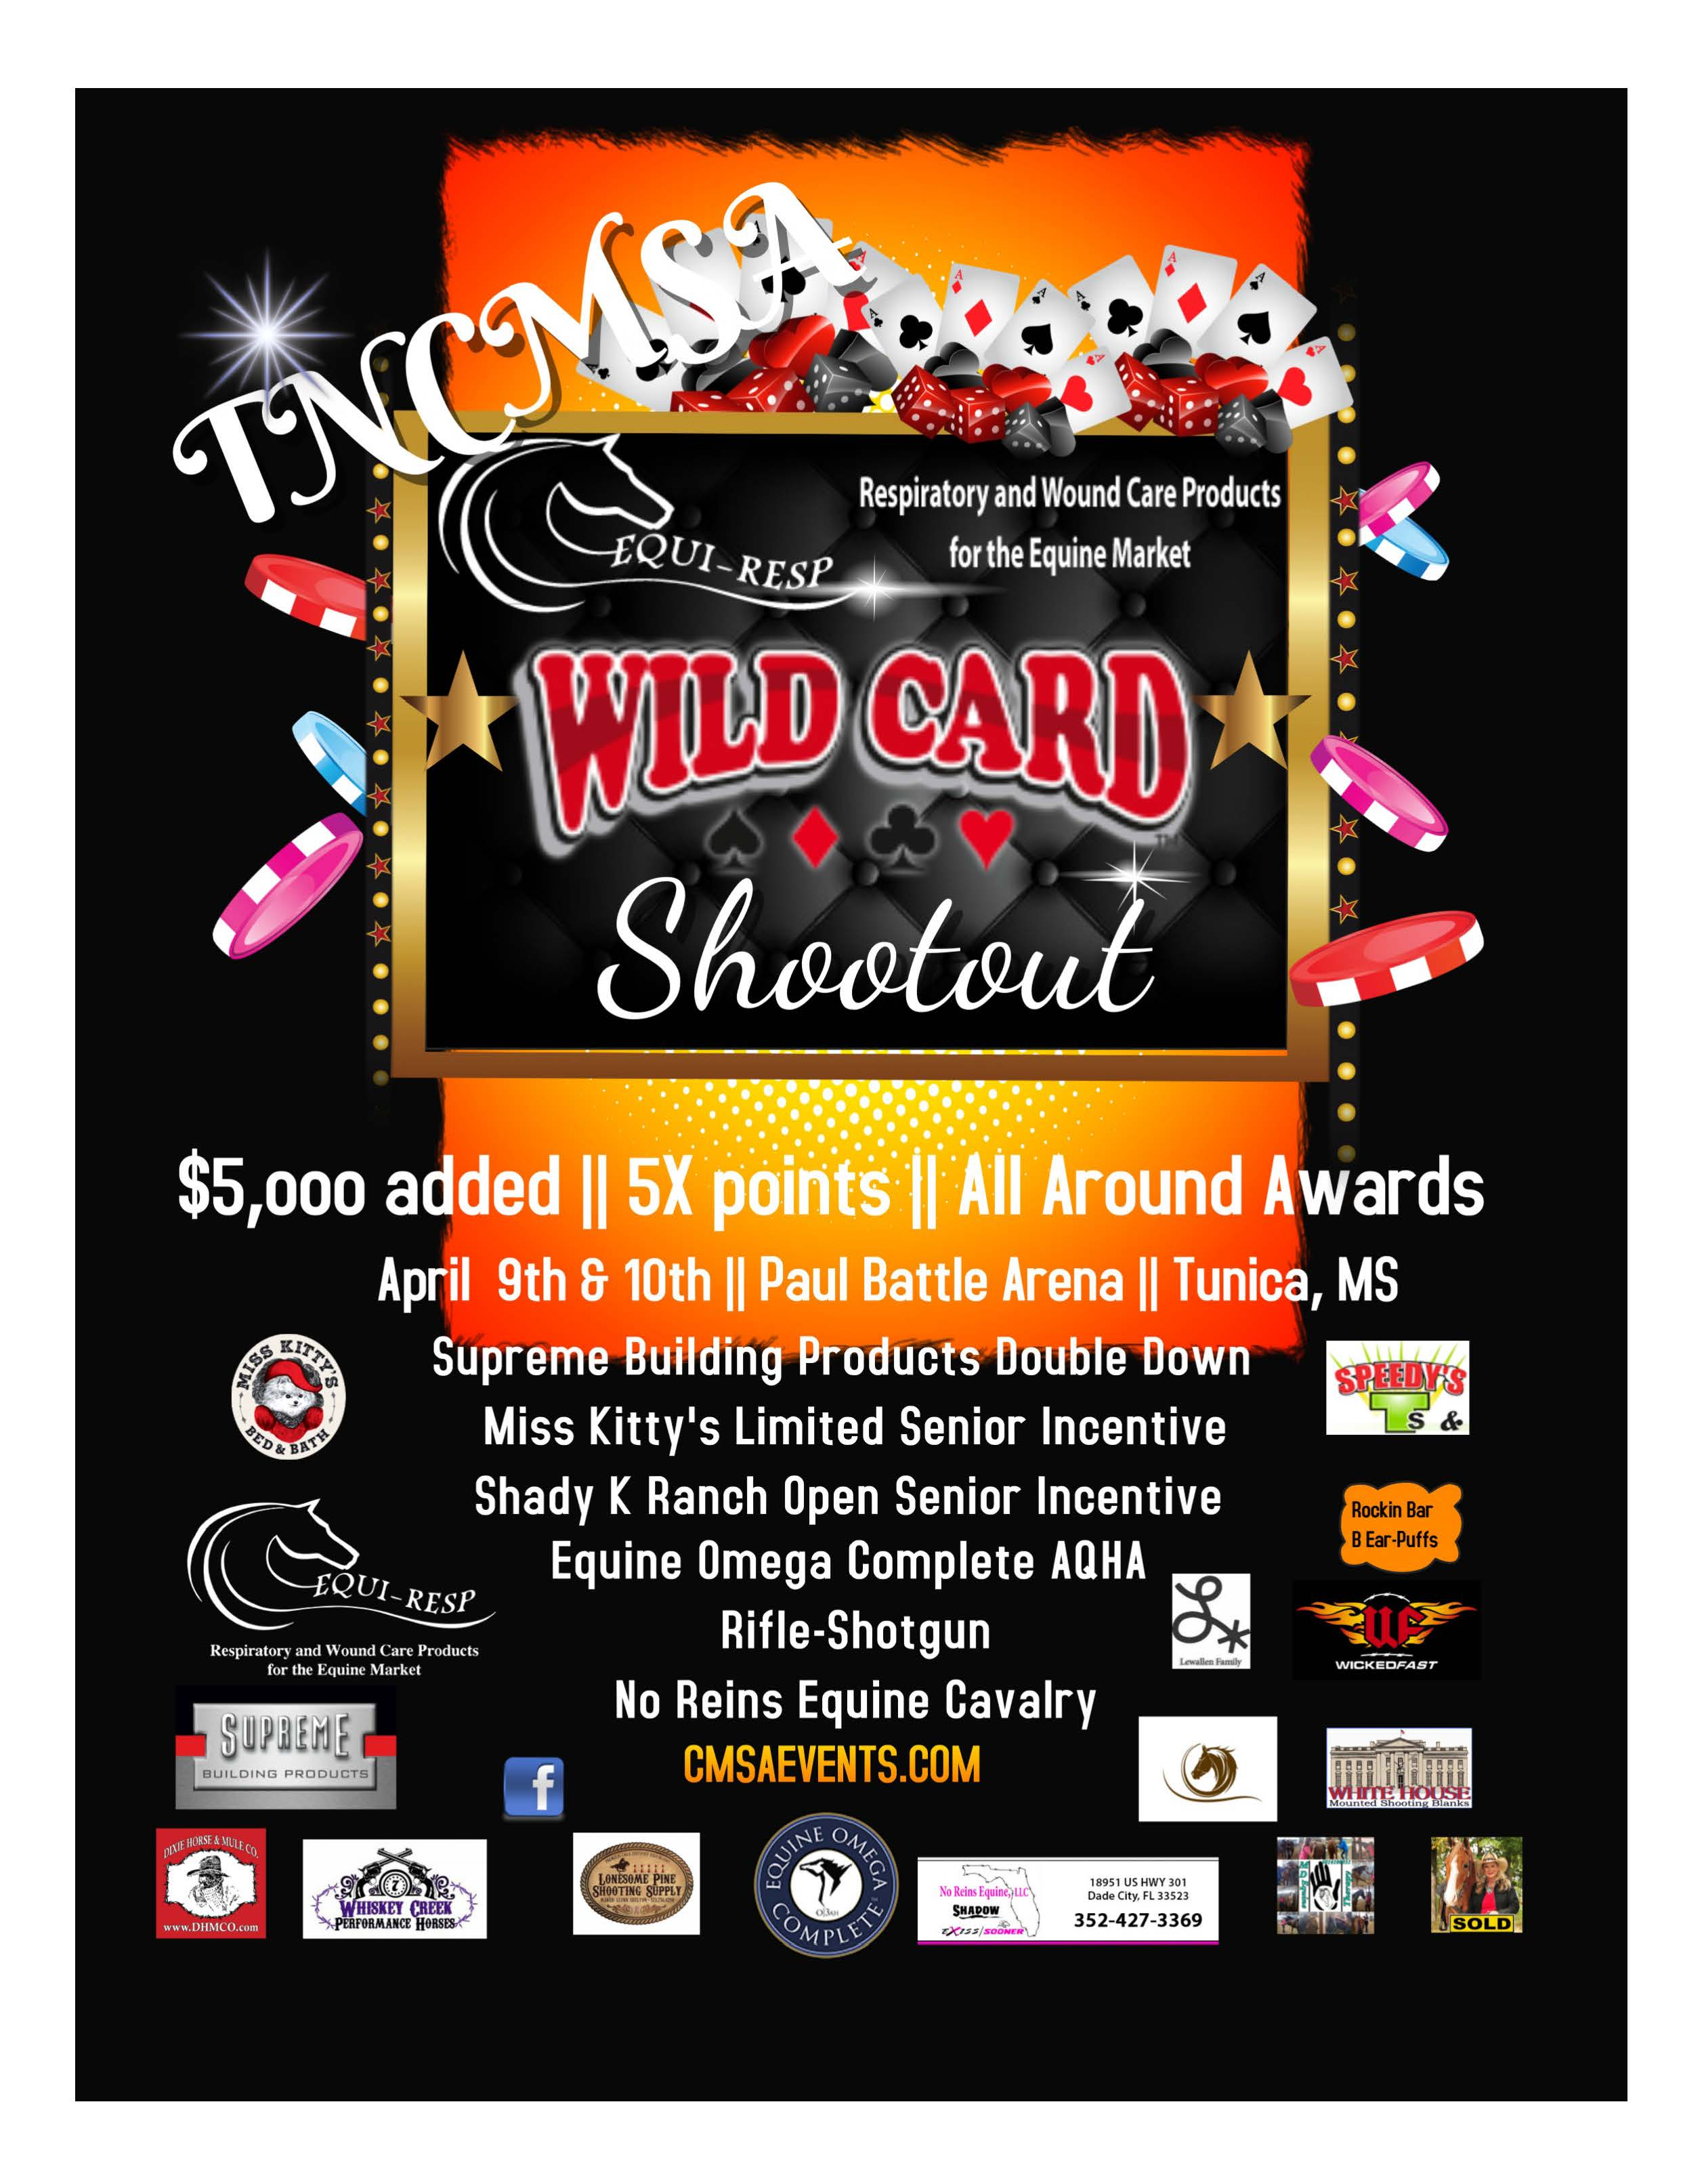 Equi Resp Wild Card Shootout